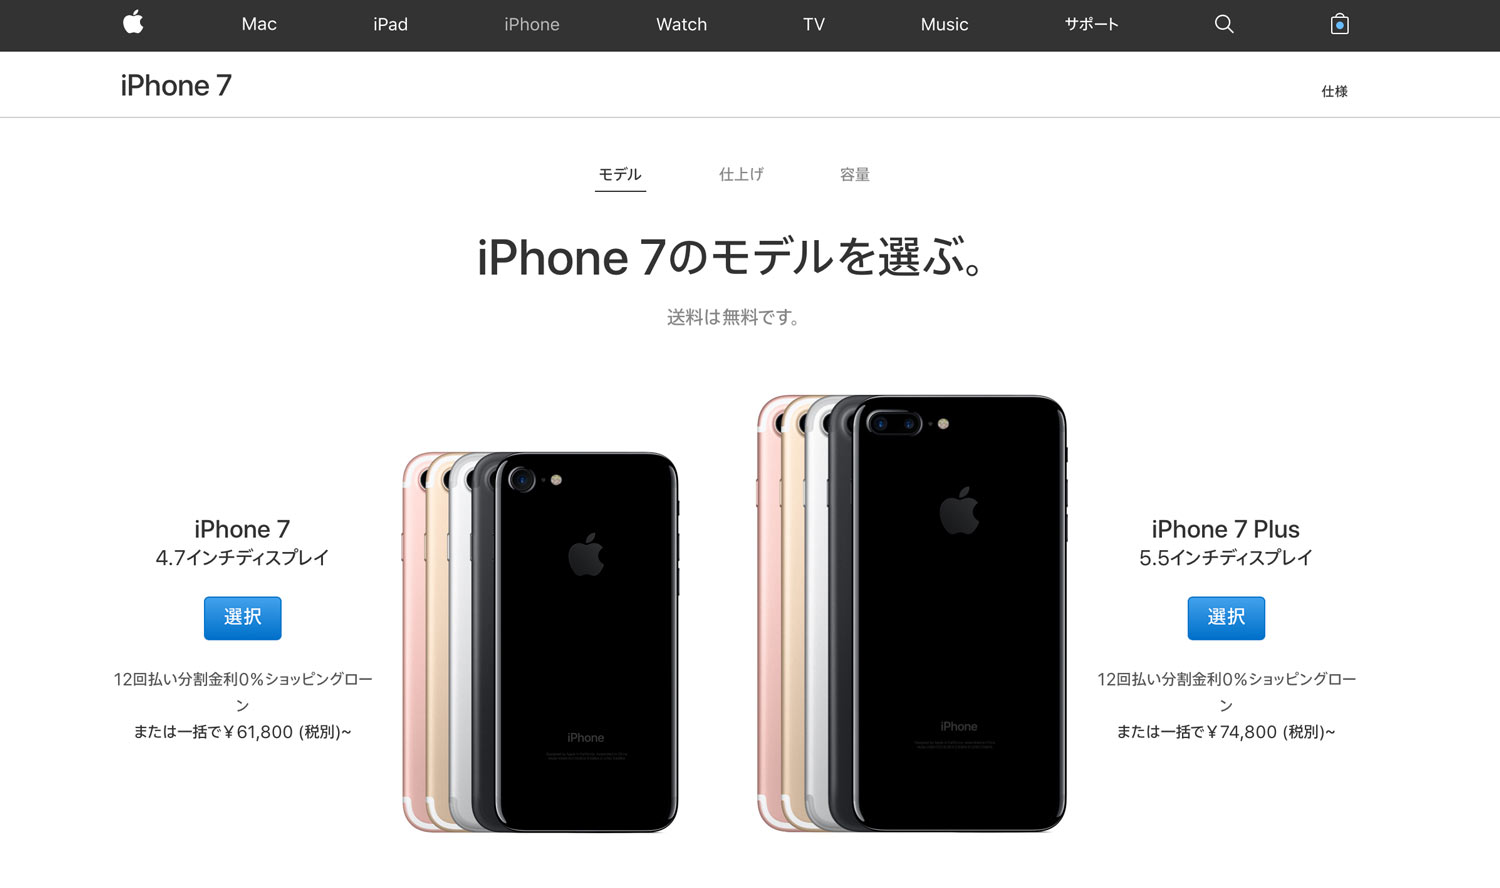 Apple StoreでiPhoneを購入する